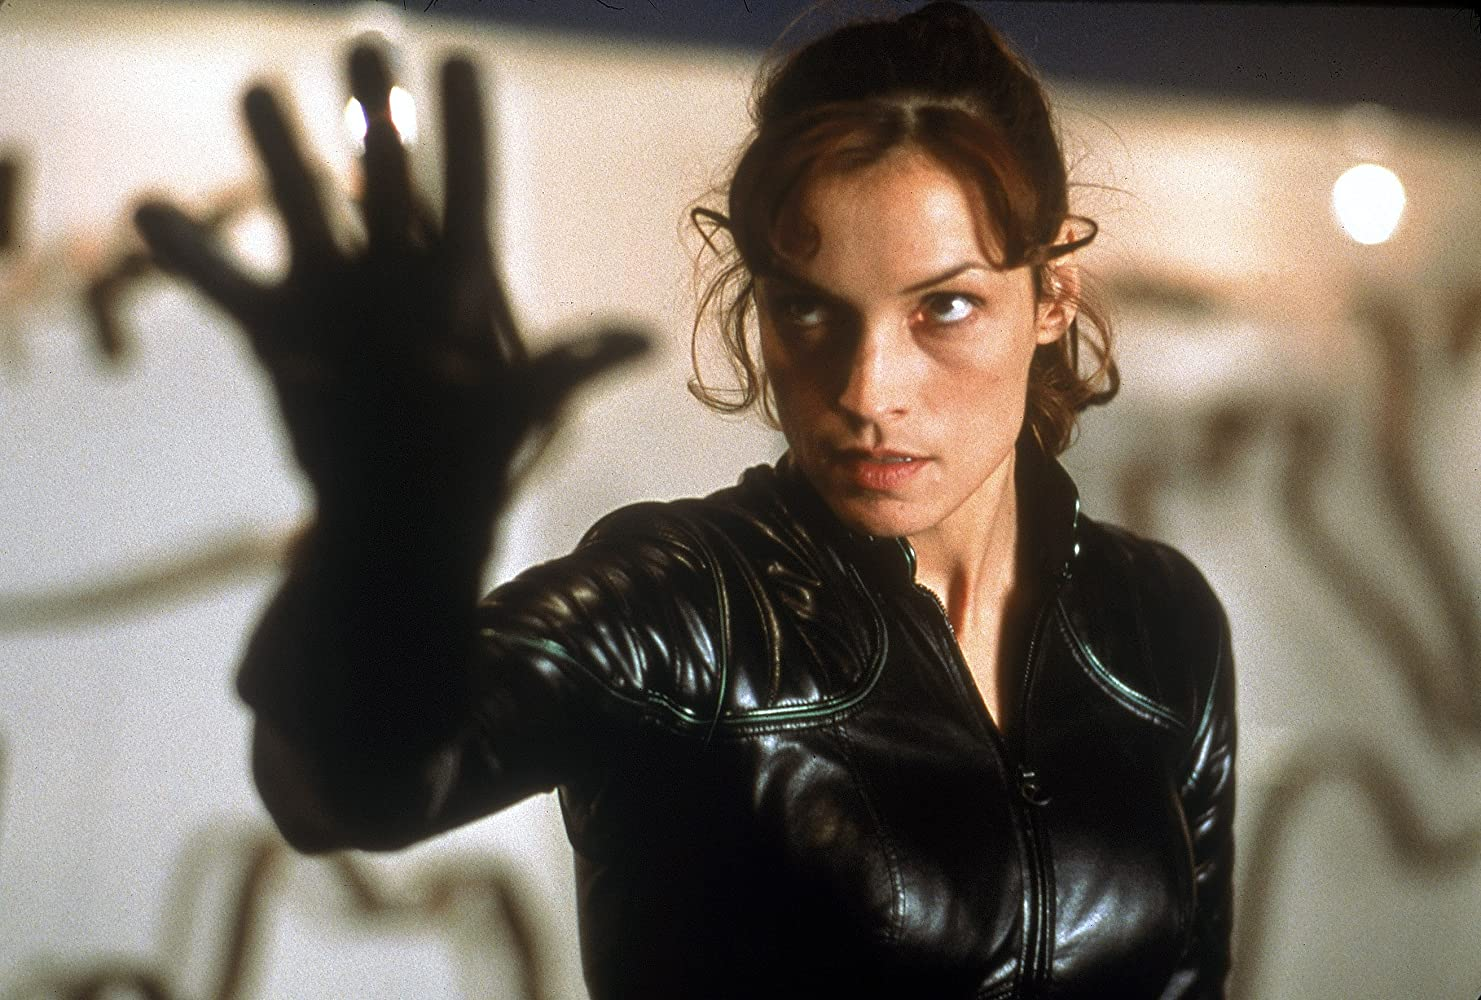 Famke Janssen in X-Men (2000)